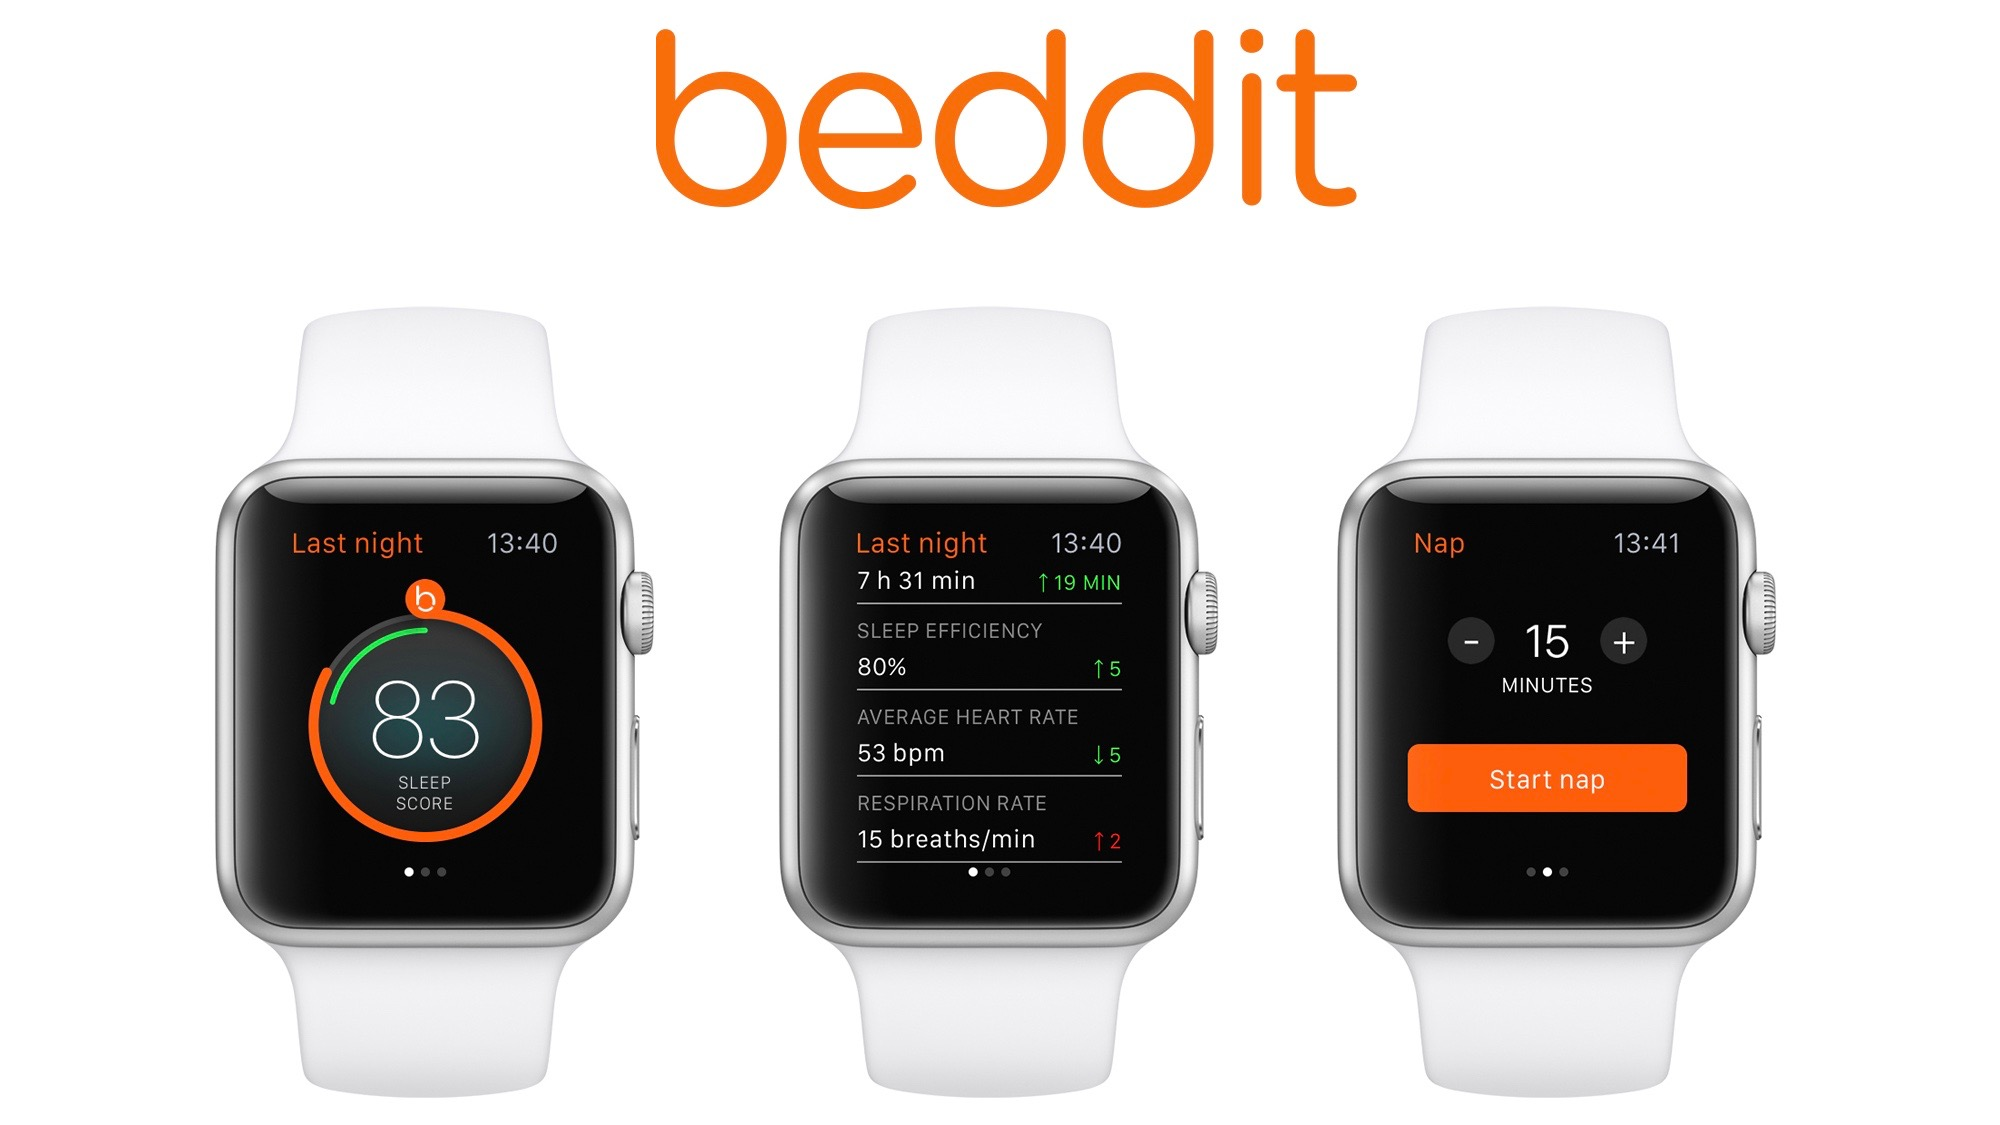 Apple Watch Beddit app